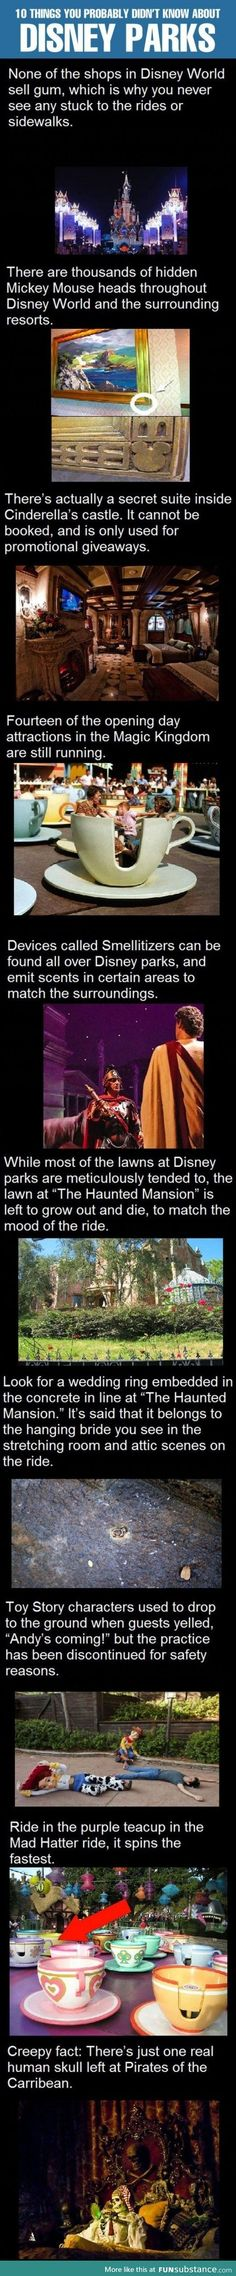 Disney world facts | this makes me wanna go back!!!